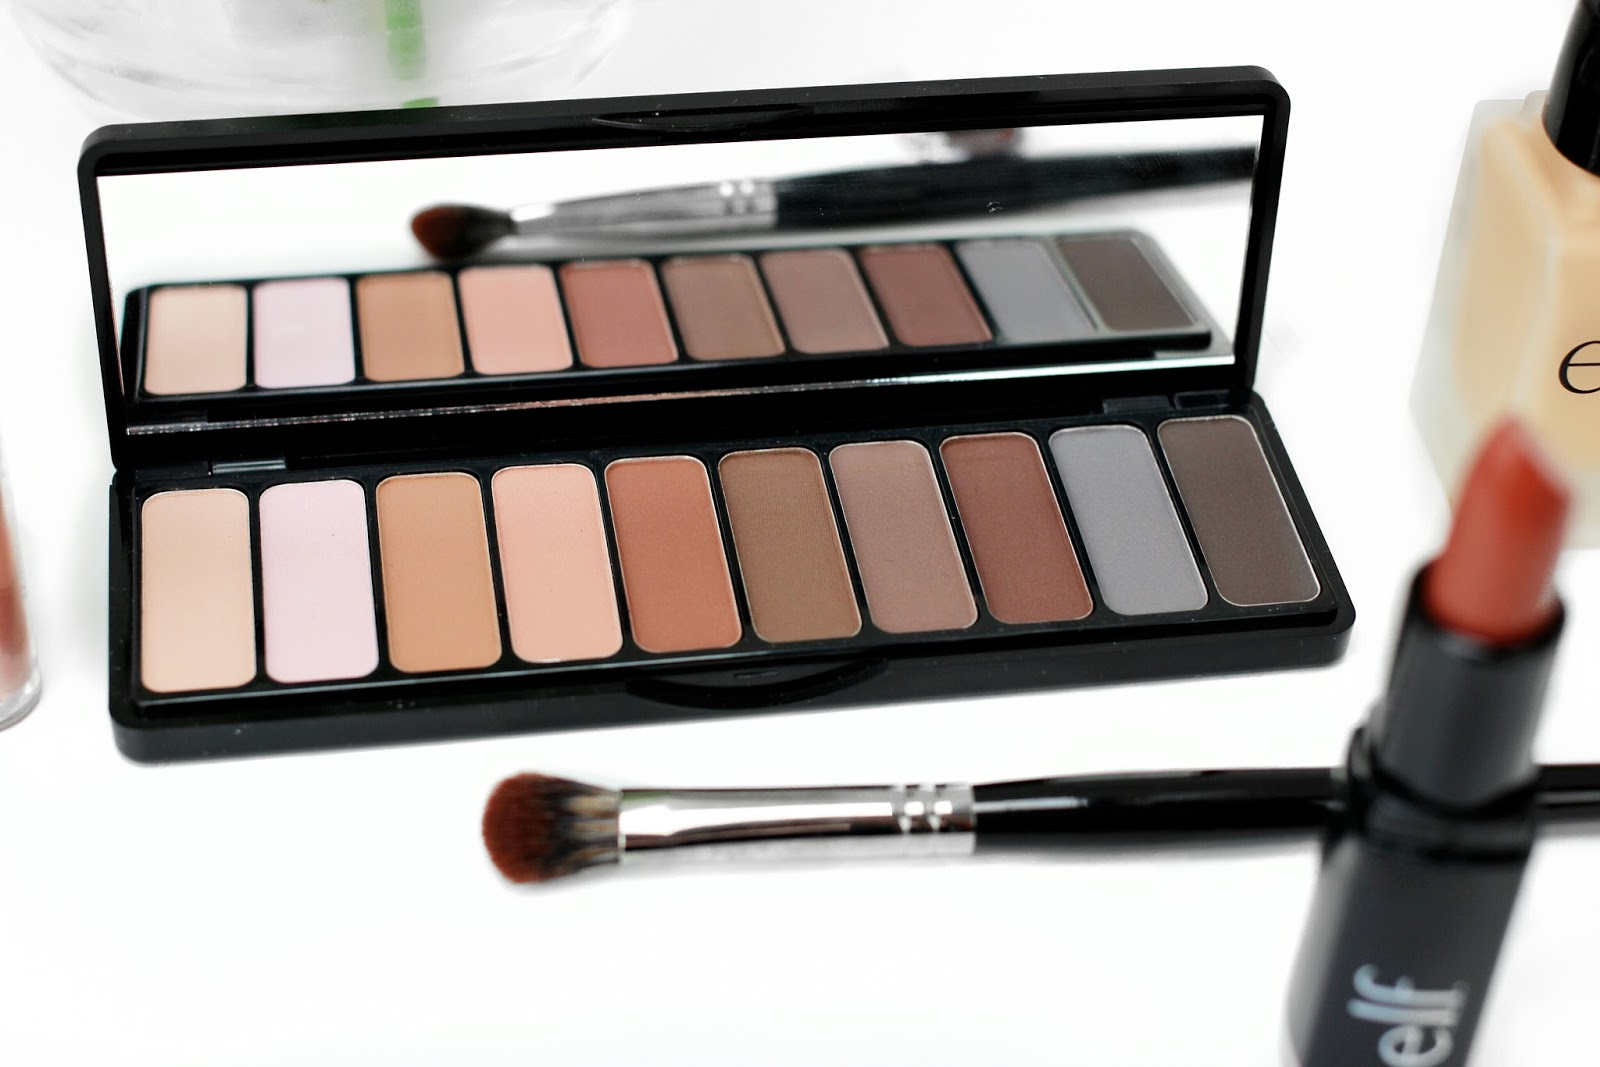 E.L.F Mad For Matte Eyeshadow Palette